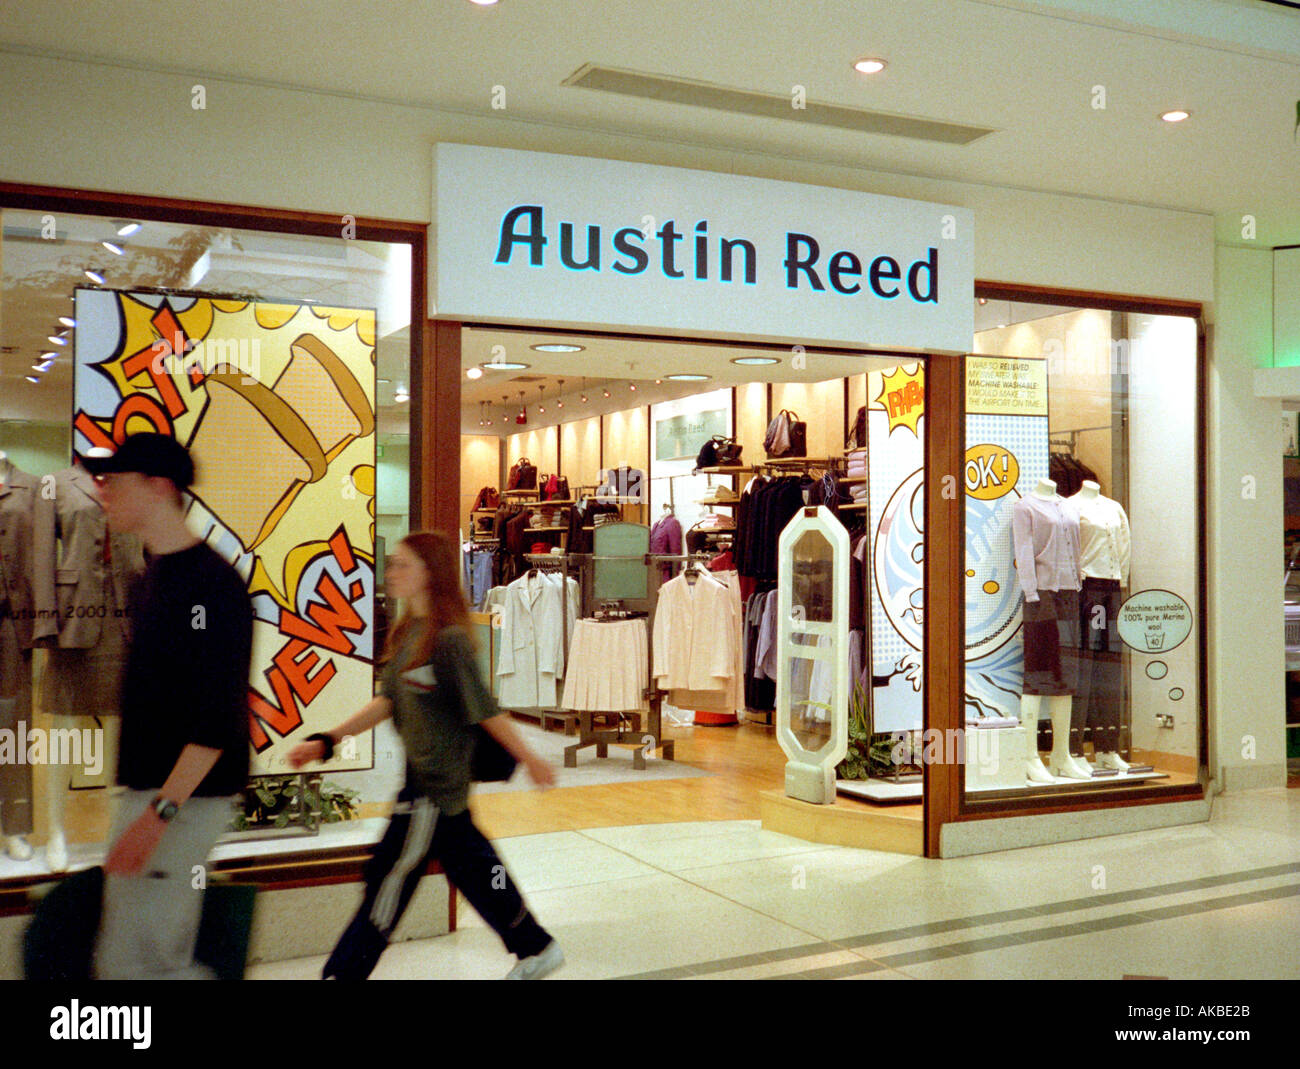 Austin Reed Clothing Shop Bromley Kent Uk Stock Photo Alamy